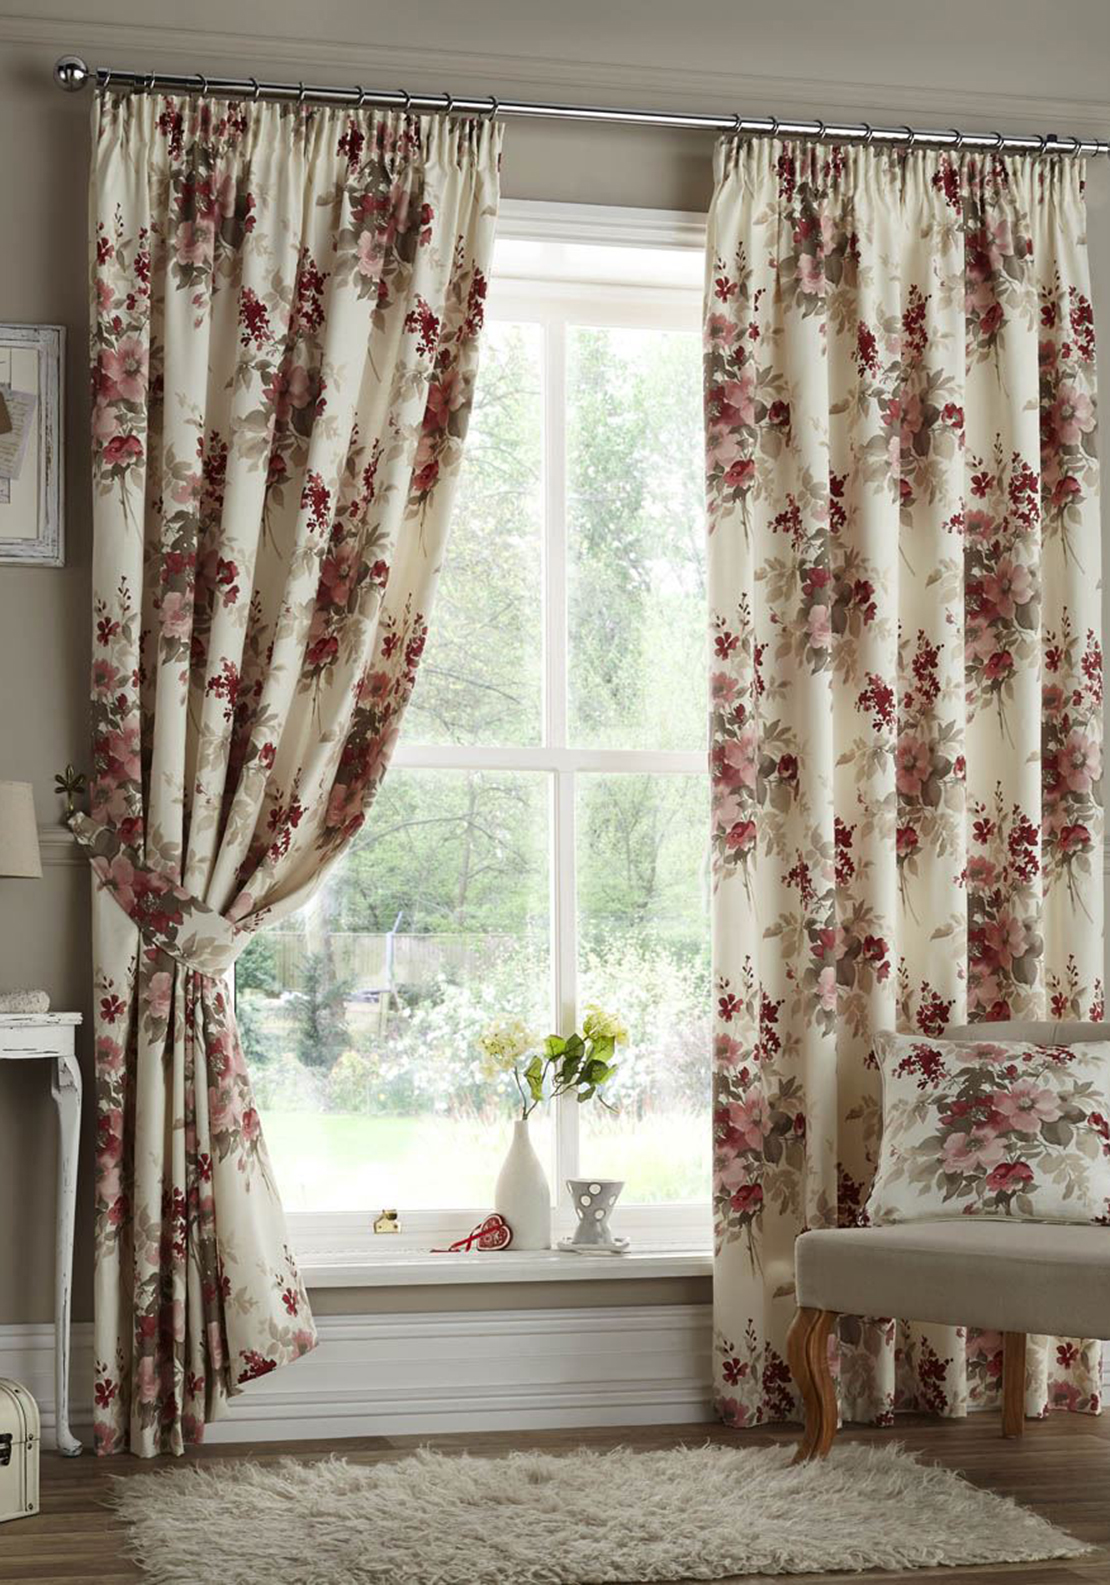 Curtina Milldale Floral Print Fully Lined Curtains, Red Multi